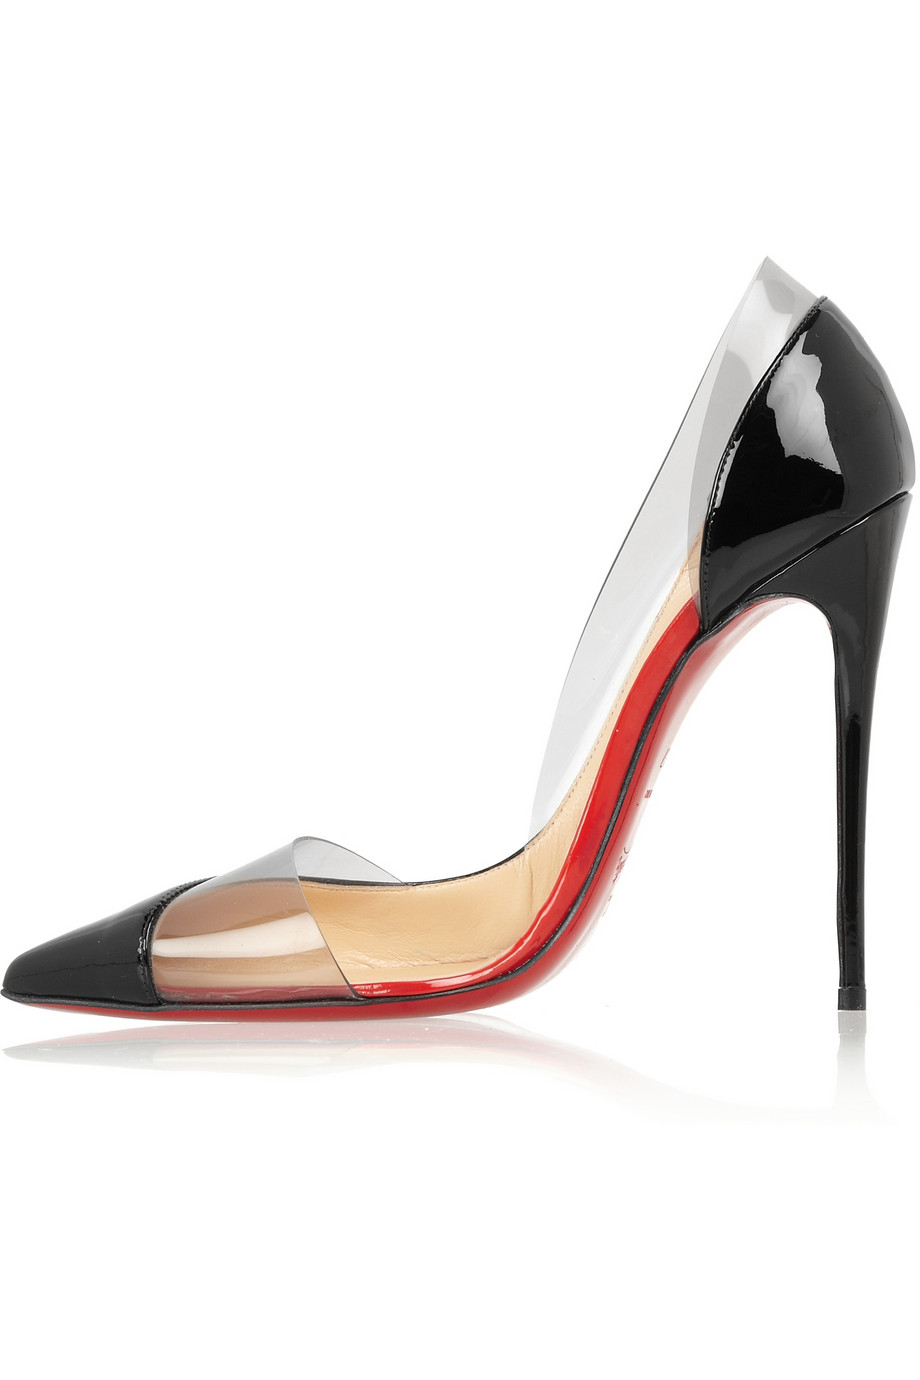 christian louboutin miss rigidaine 120 patentleather and